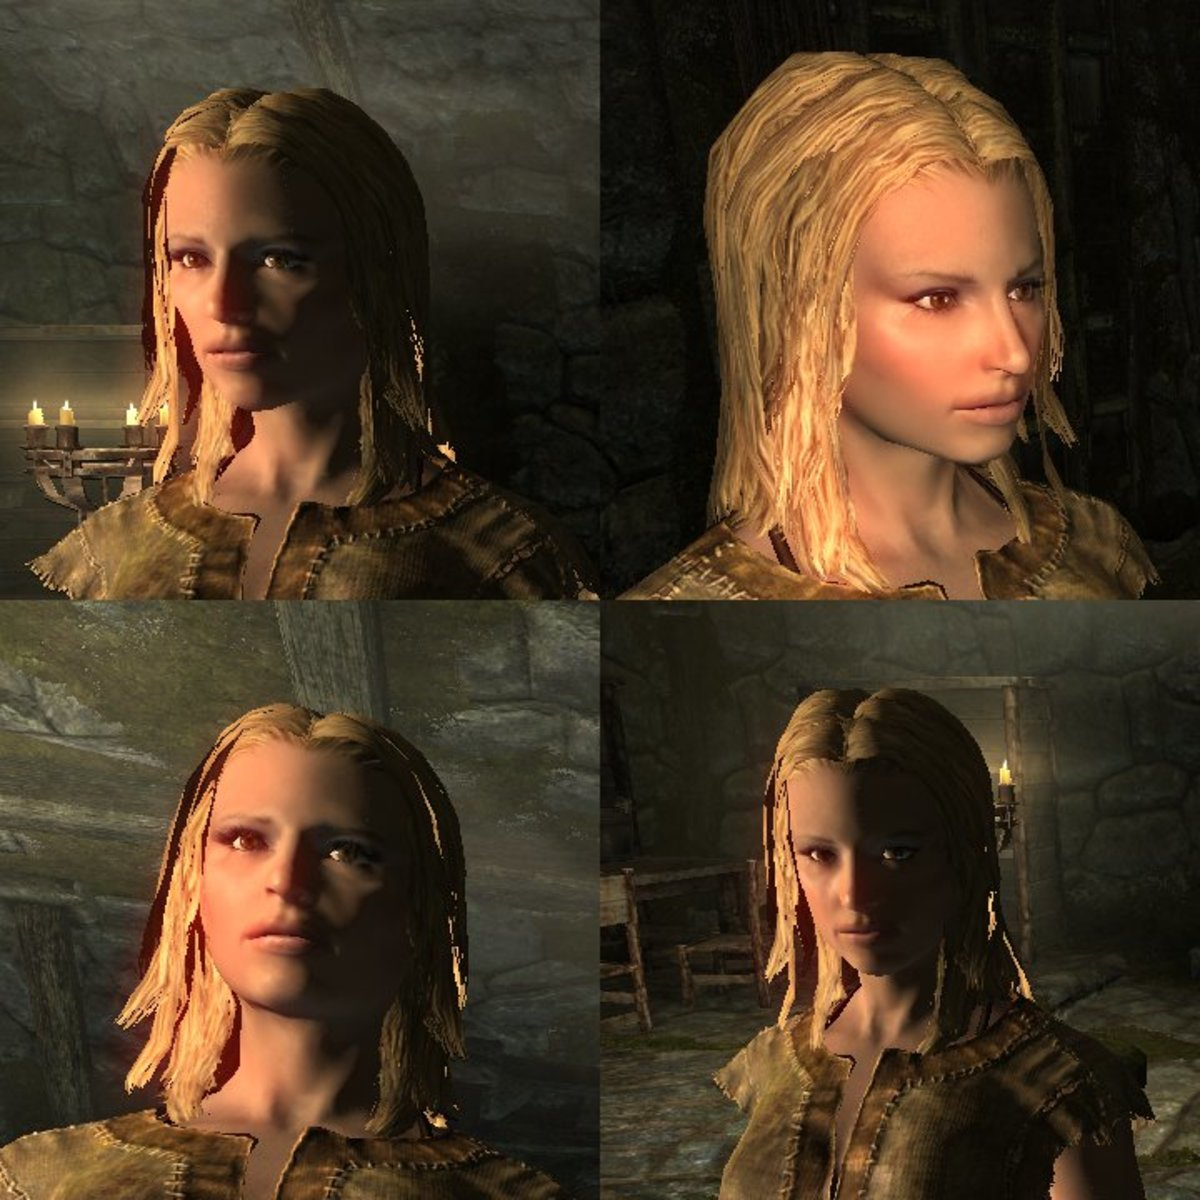 Can you identify this celebrity? Probably not. It doesn't look anything like her. 'Skyrim' sliders can be used to achieve good results, but don't expect miracles.